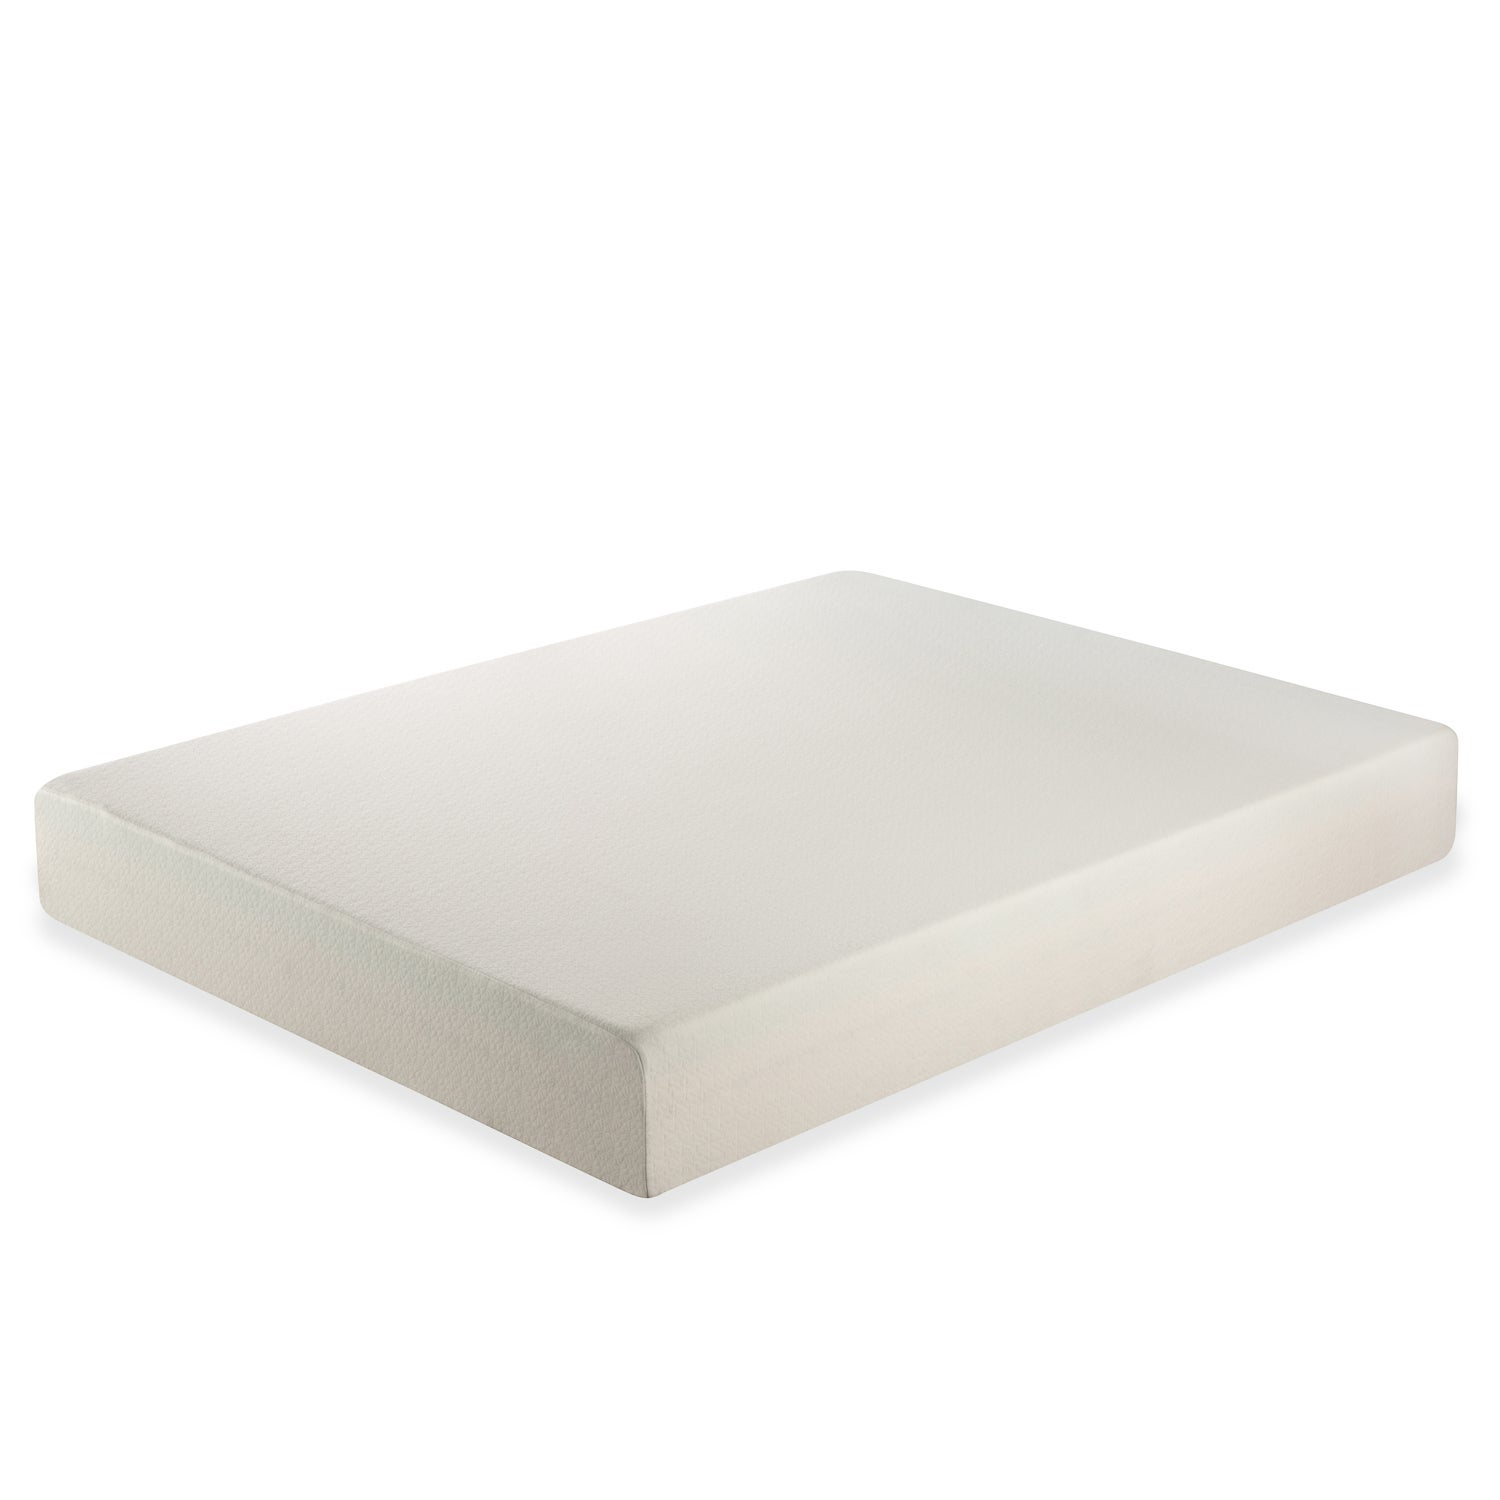 fca4f9fb722d Shop Priage by Zinus 10 inch Full-size Memory Foam Mattress - Free Shipping  Today - Overstock - 14446346